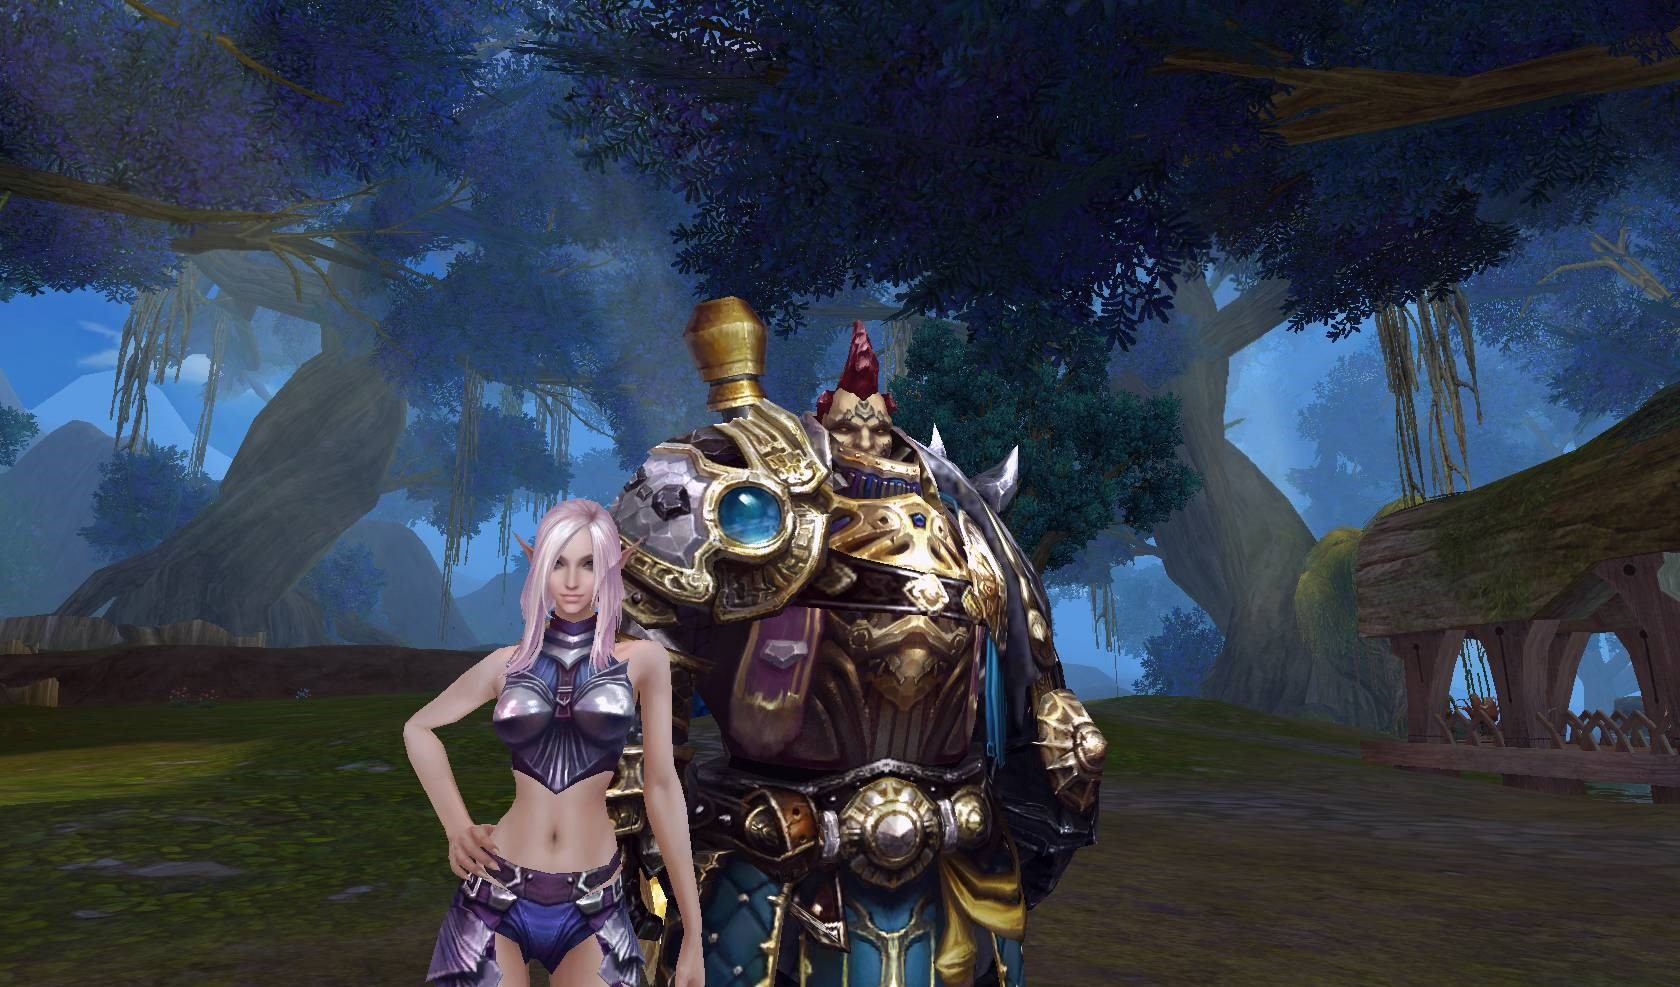 World of Warcraft is free to play this weekend - Polygon